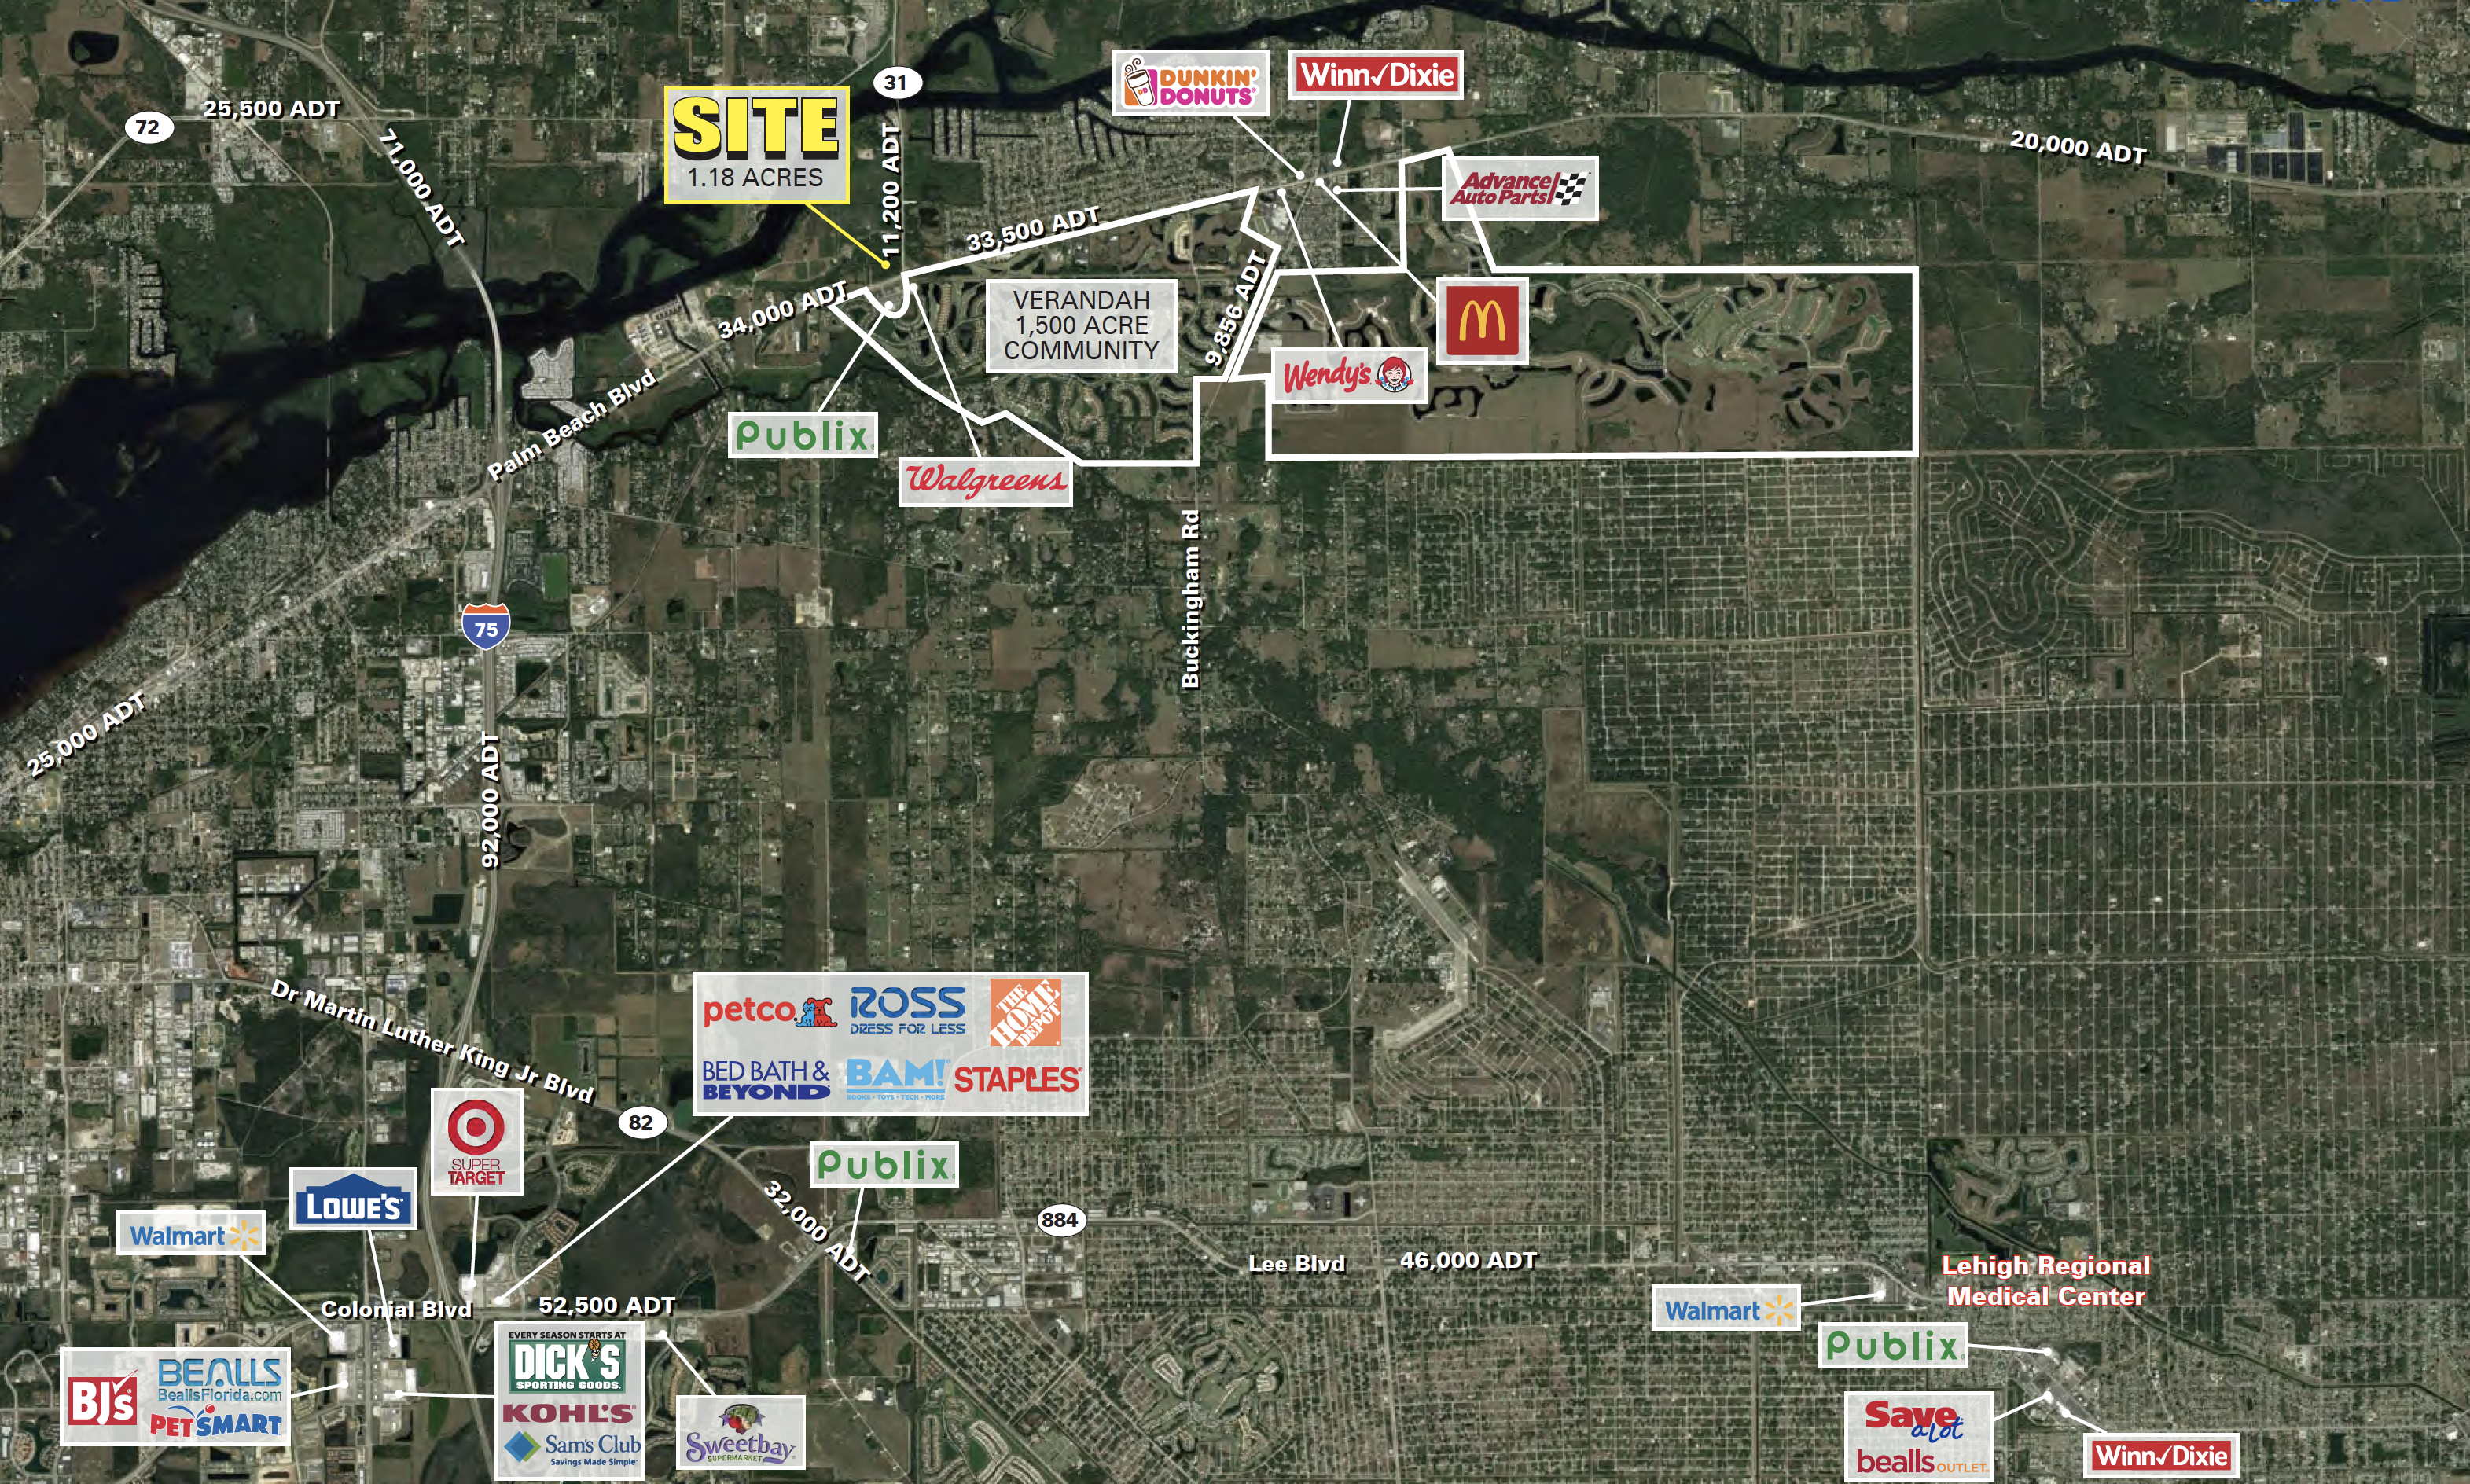 Ft. Meyers Real Estate Development